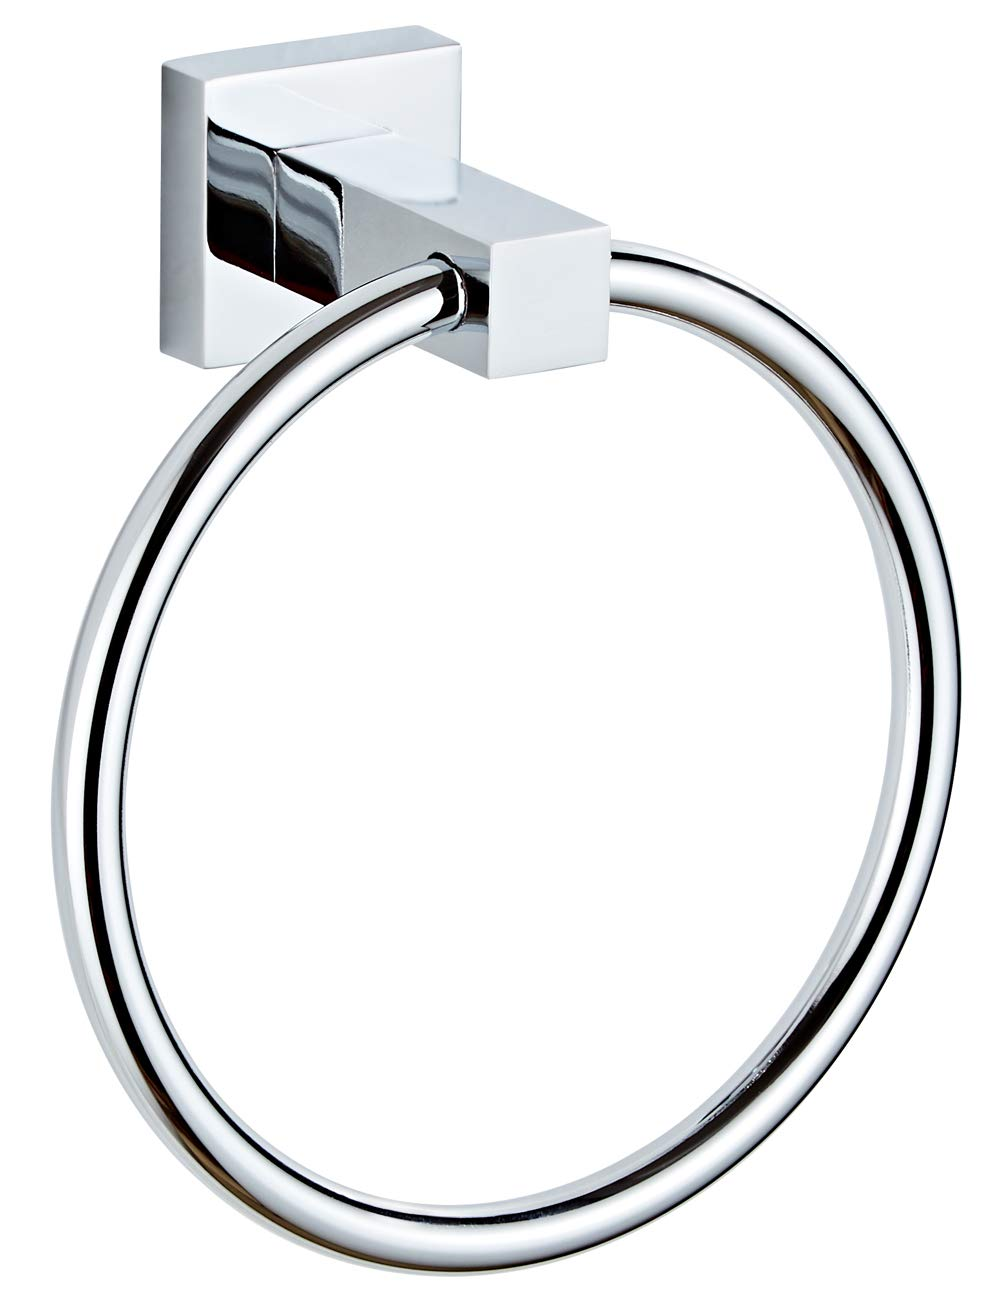 Lonffery Stainless Steel Towel Ring, Wall Mounted Hand Towel Holder for Bathroom, Washroom, Kitchen, Polished Chrome